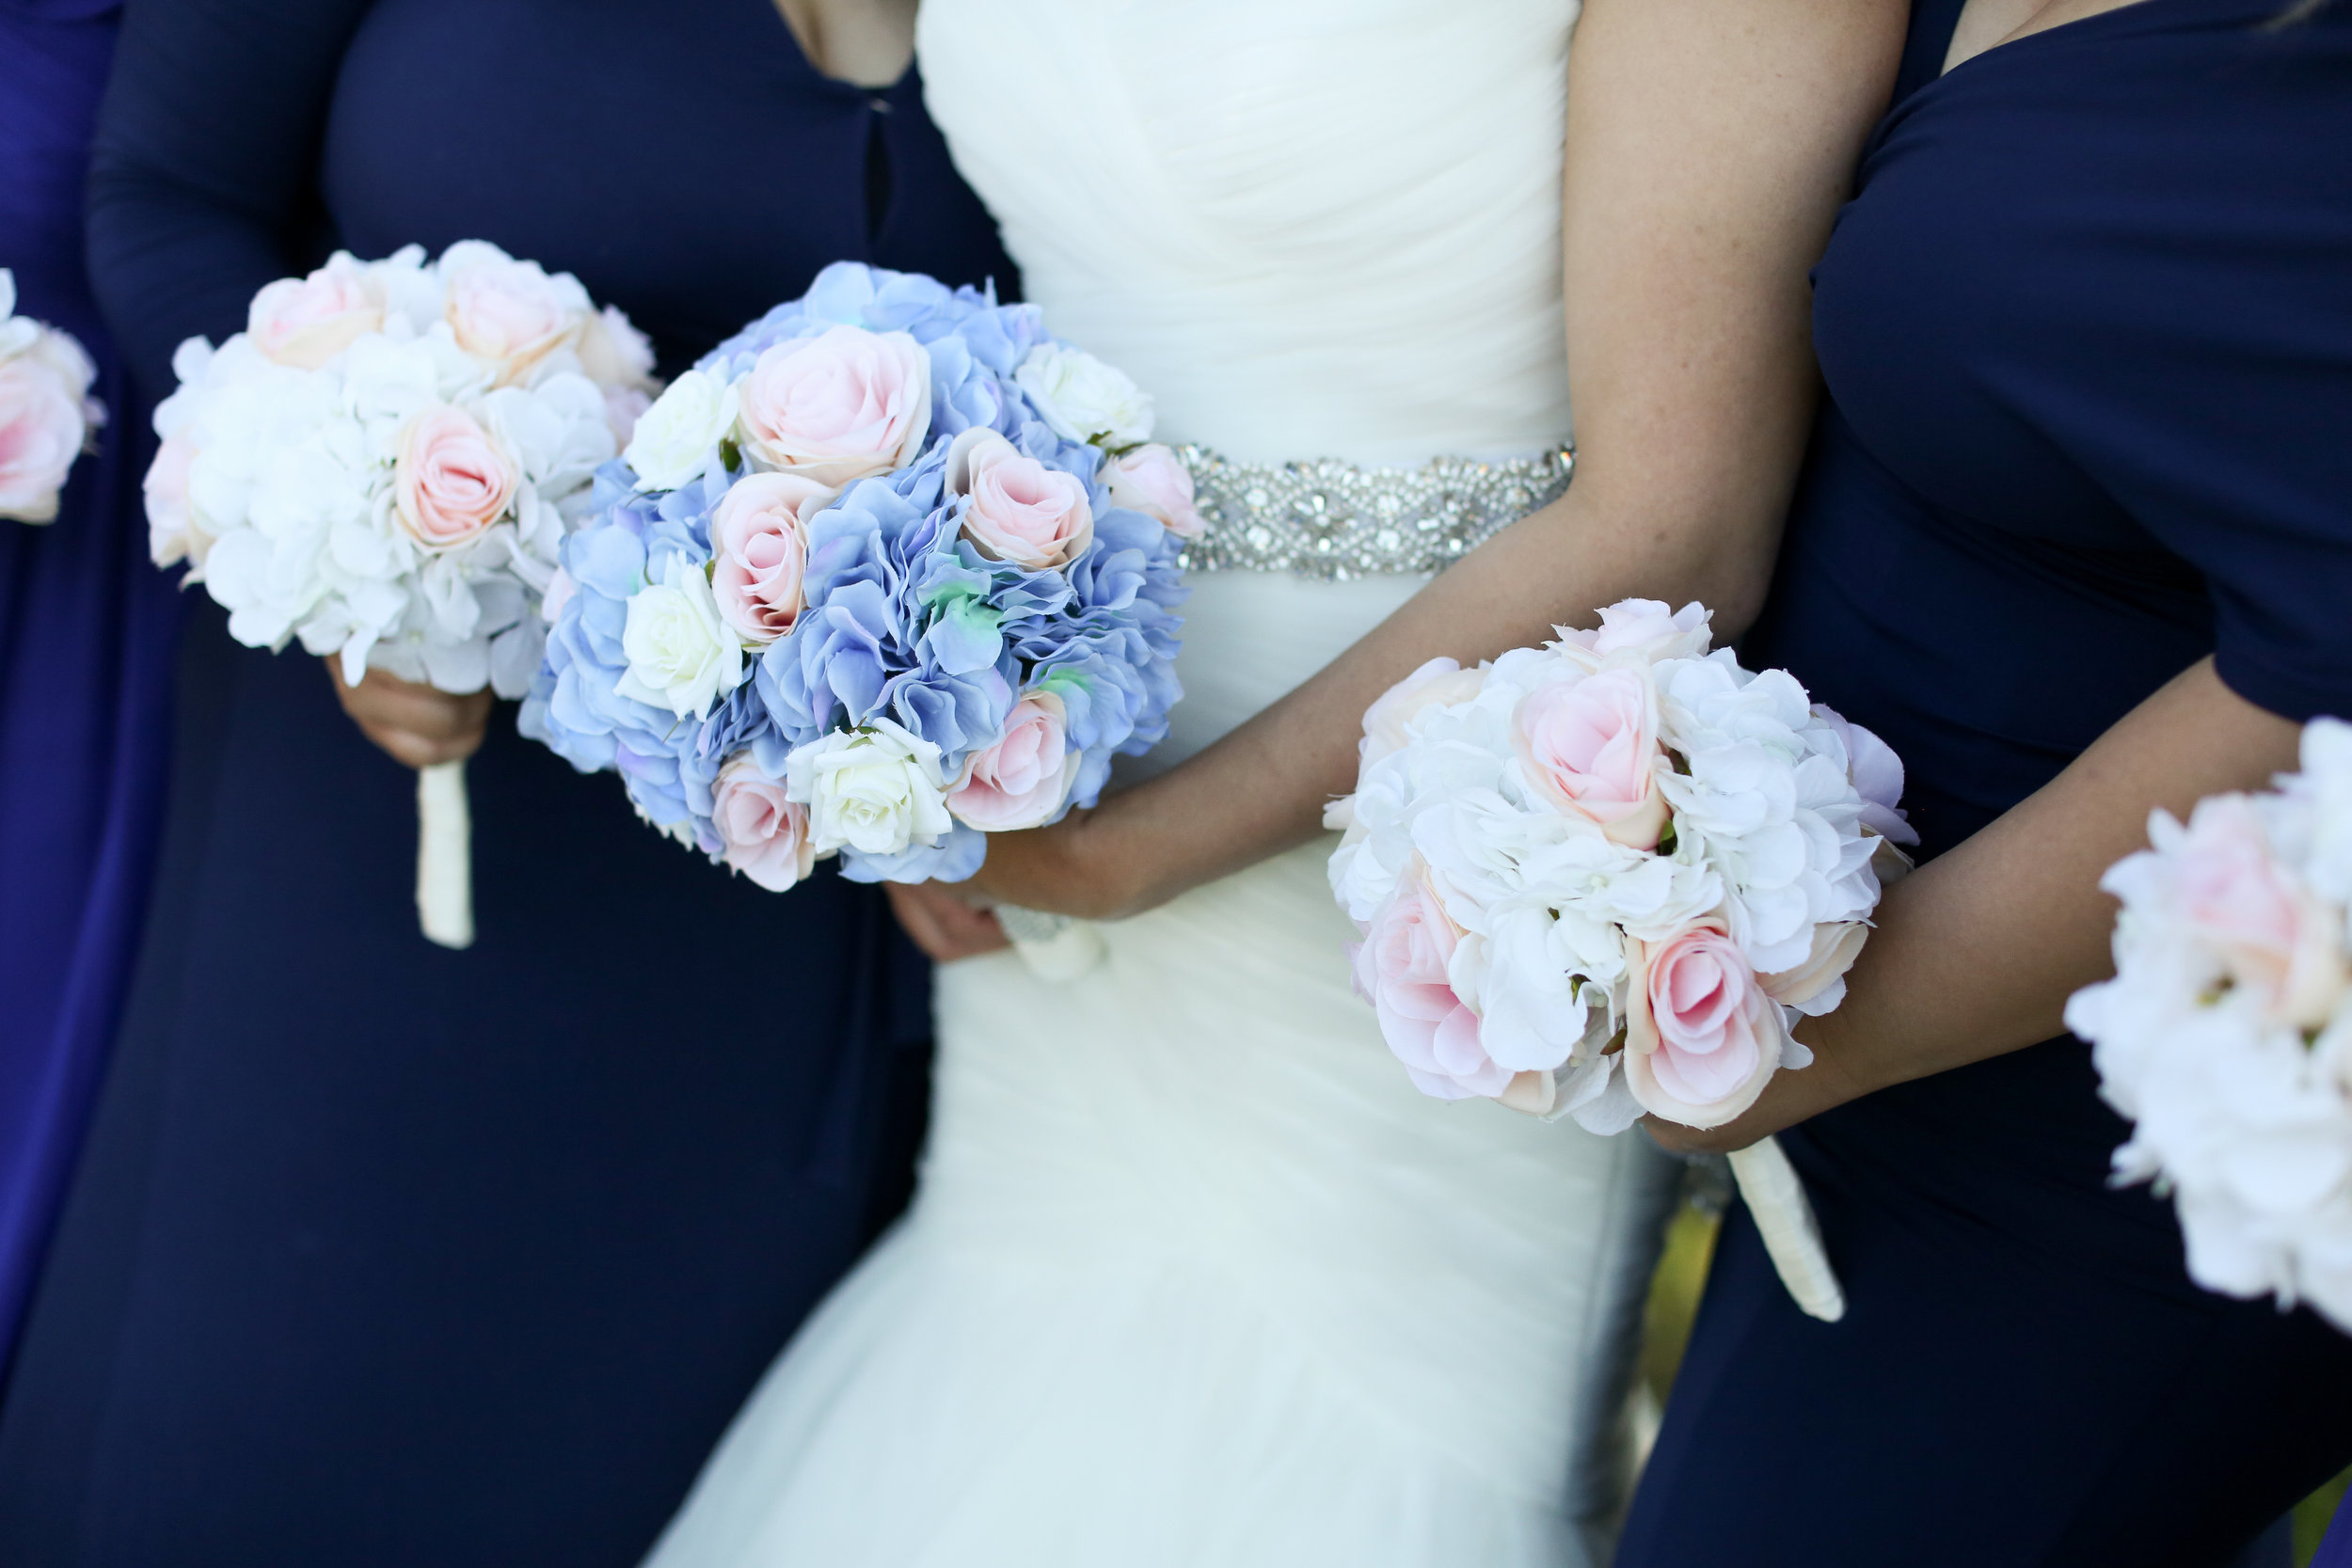 silk-bridal-bouquet-wedding-flowers-Minneapolis.jpg